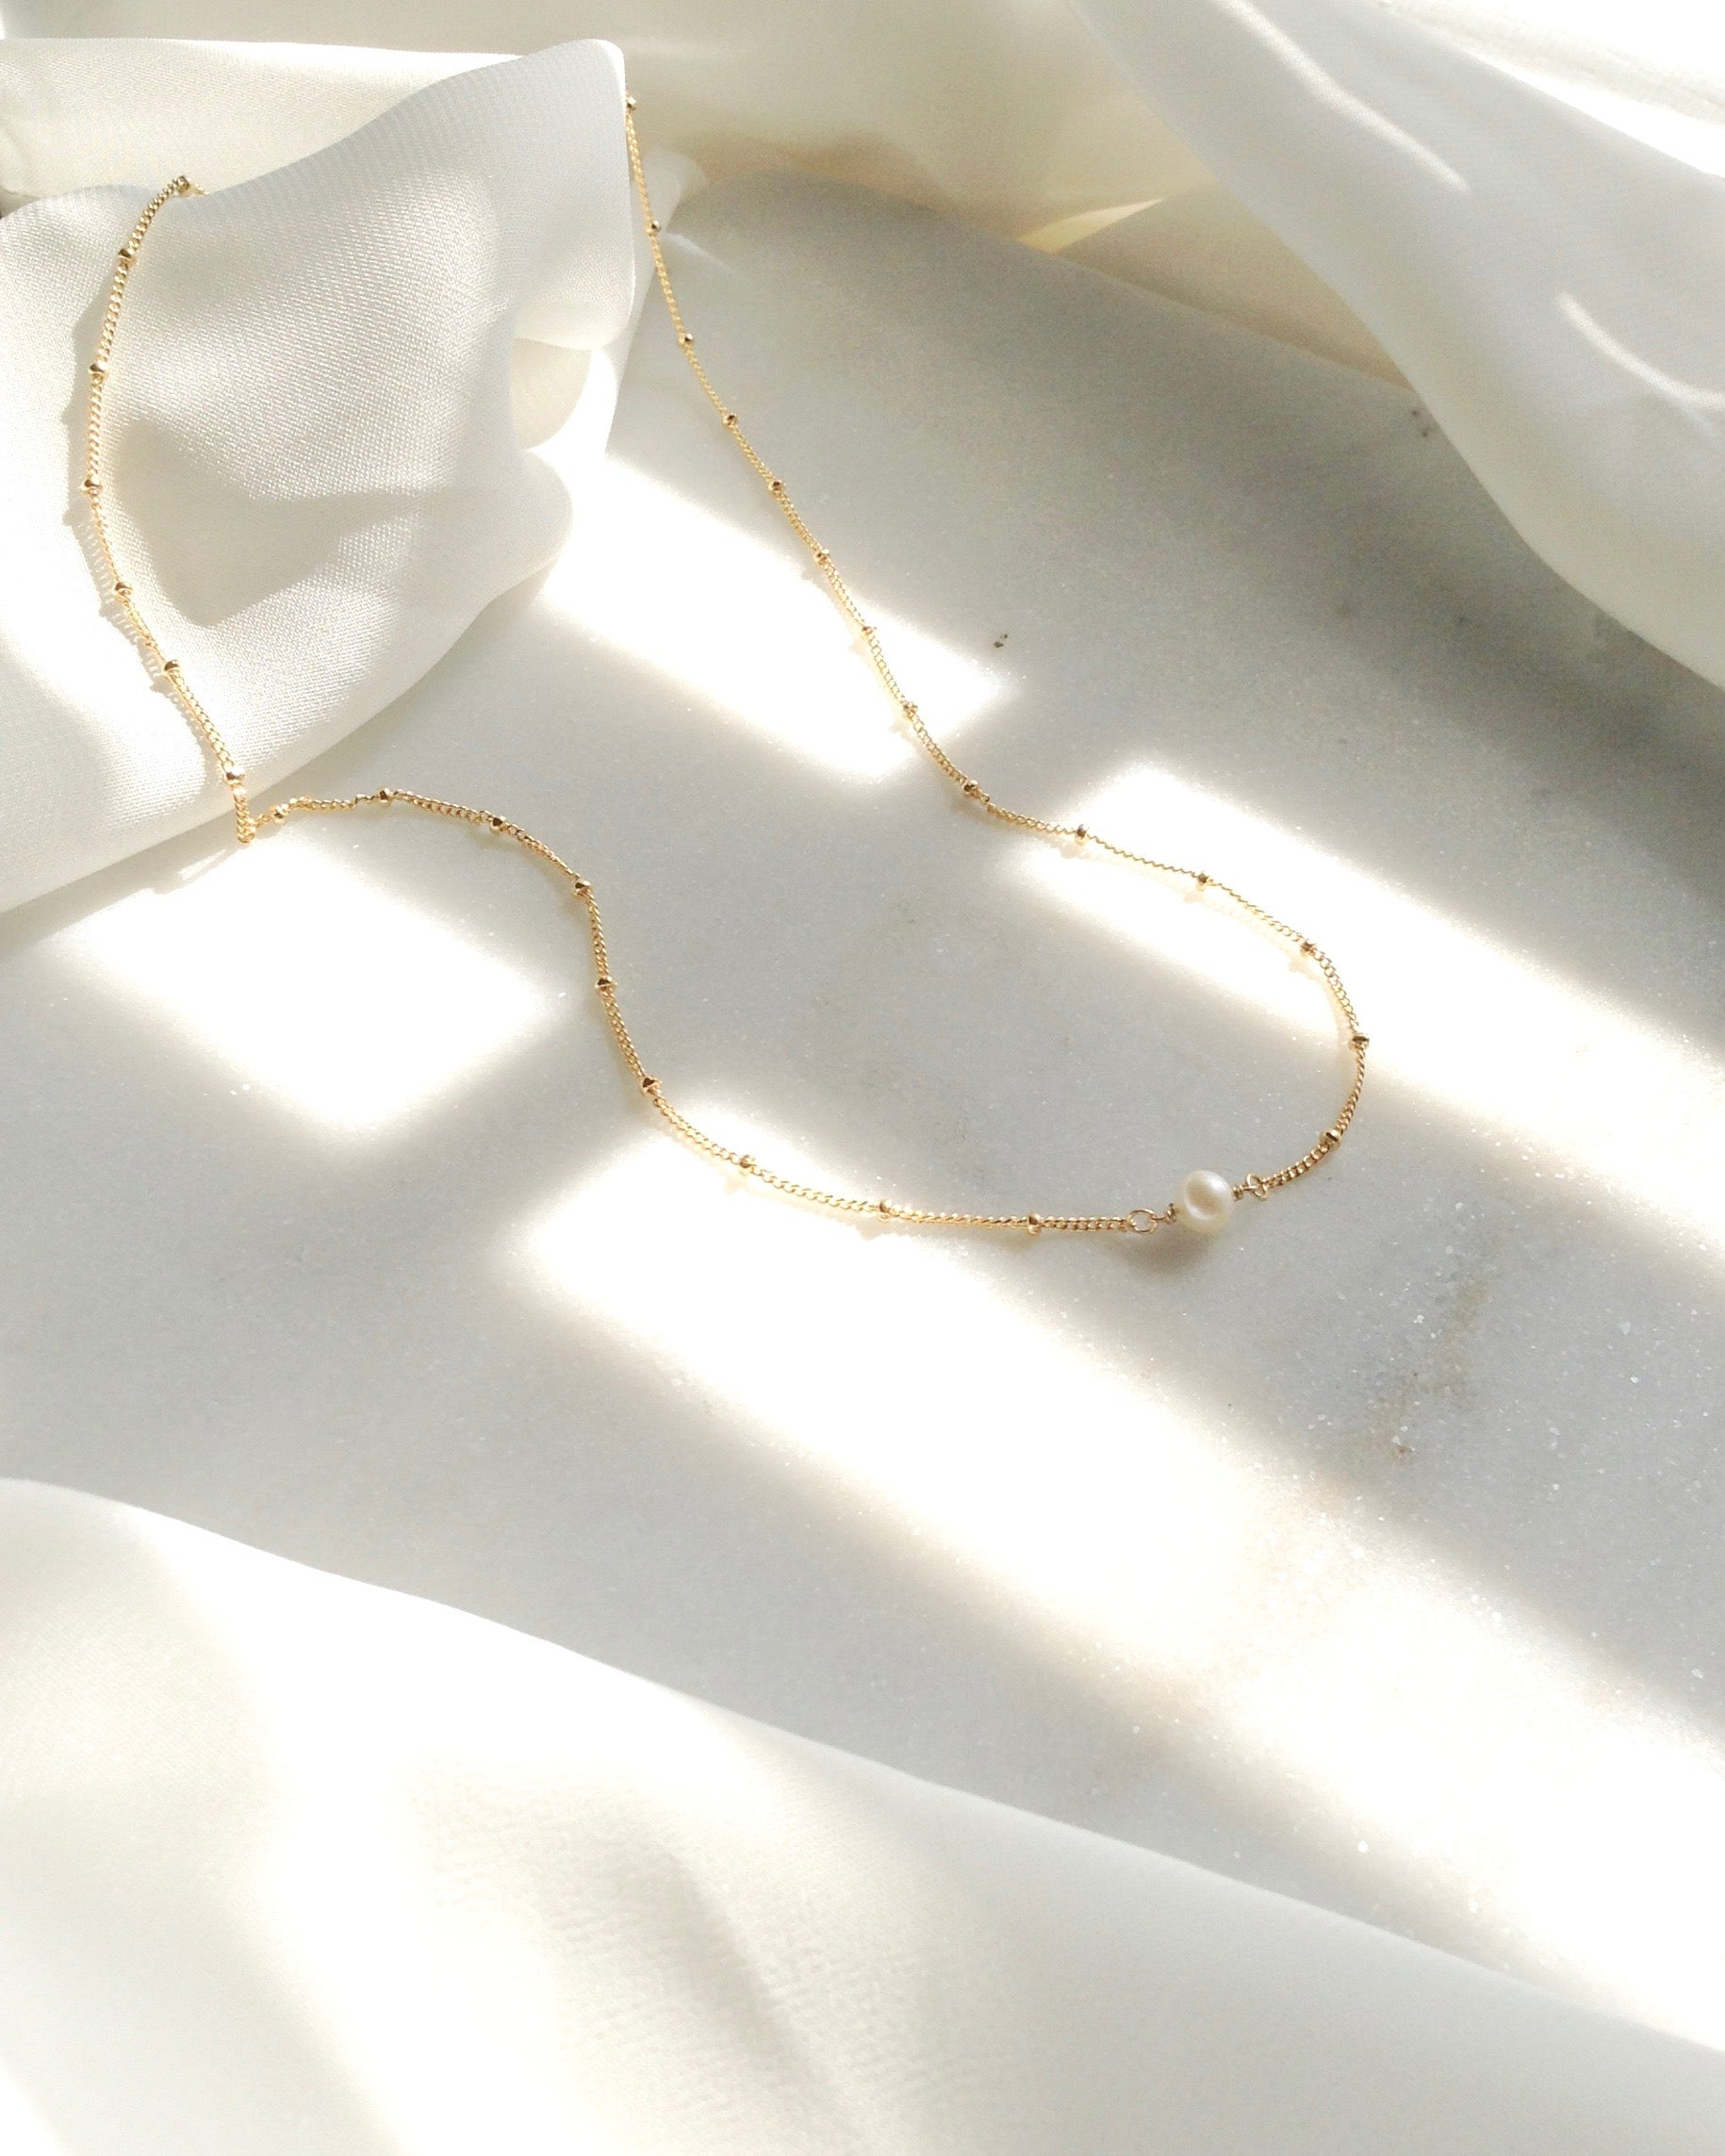 Dainty Pearl Necklace in Gold Filled or Sterling Silver | IB Jewelry